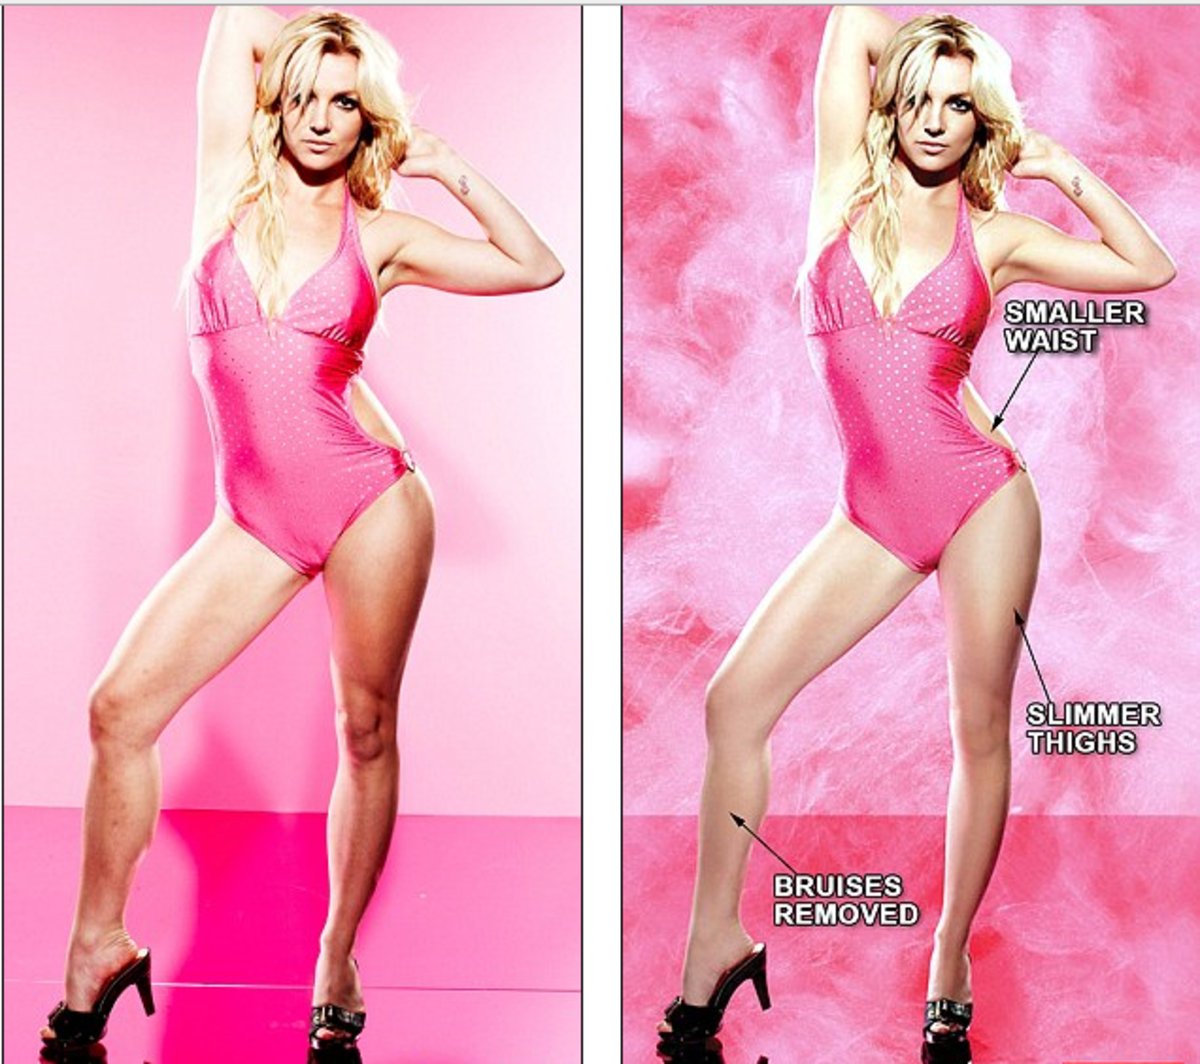 The photo on the left is the original photo of Britney Spears, the one on the right is the airbrushed photo.  Notice Britney's legs, waist, and arms are thinner.